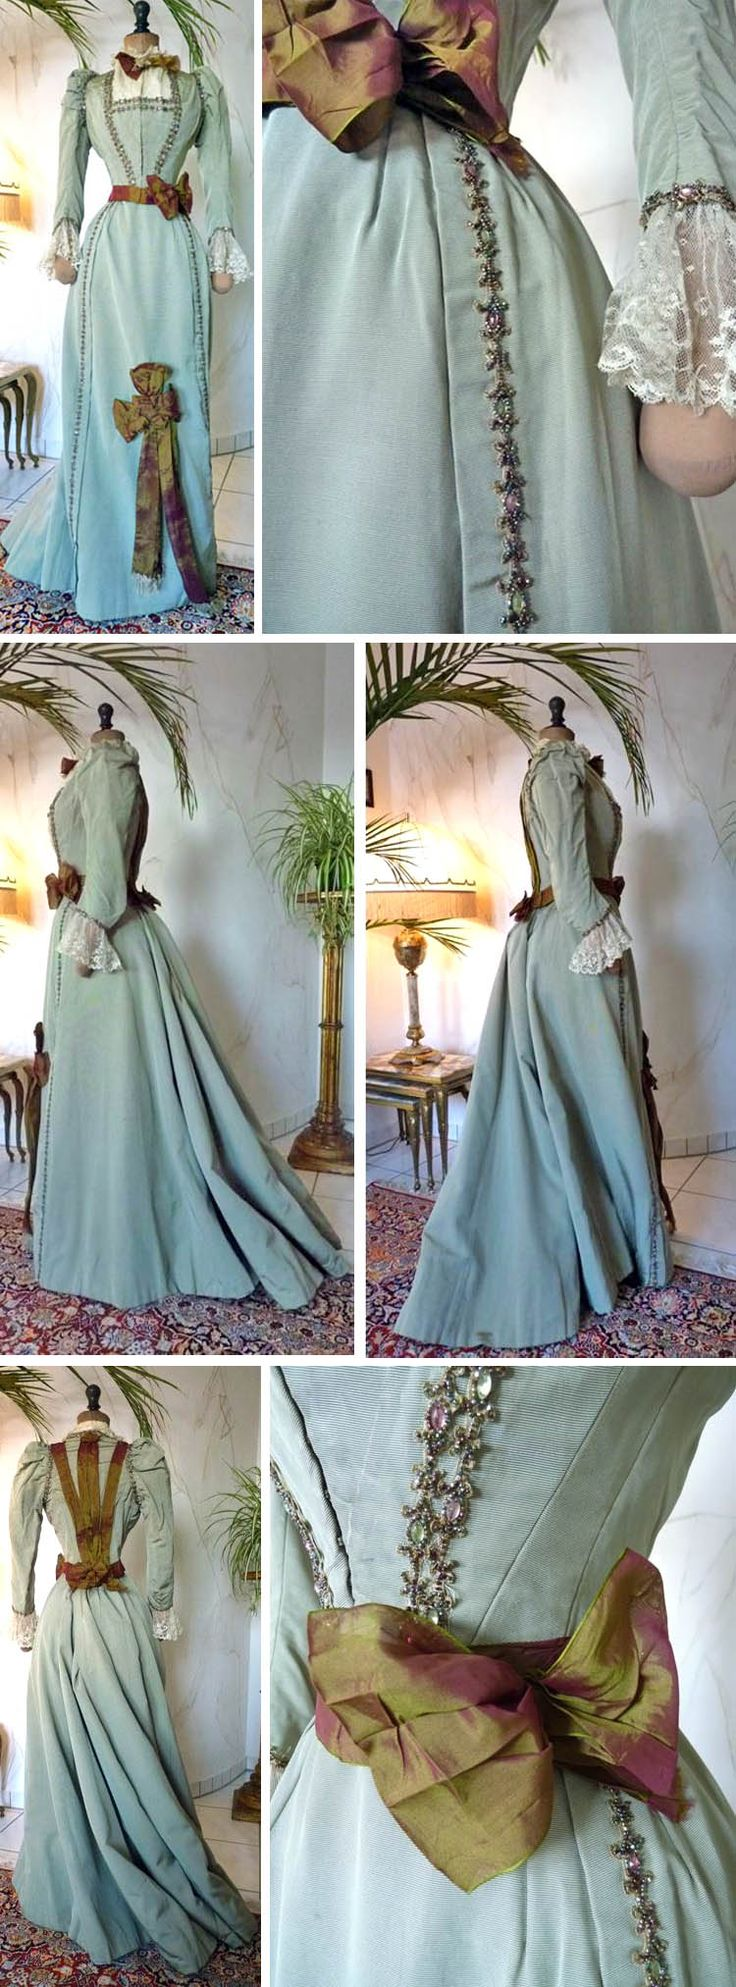 Two-piece walking dress, circa late 1890s. Pale green silk faille. Boned bodice lined in green cotton with faux gemstone braid in front and around sleeves and cuffs. Contrasting lace forms placket, collar, and cuffs. Iridescent 2-tone silk organza outlines back seams and defines jacket edge. Fastens front with hooks and bars. Skirt lined in glazed cotton and constructed with gored sections and stroked pleats at center back. More braid and bow on front skirt.